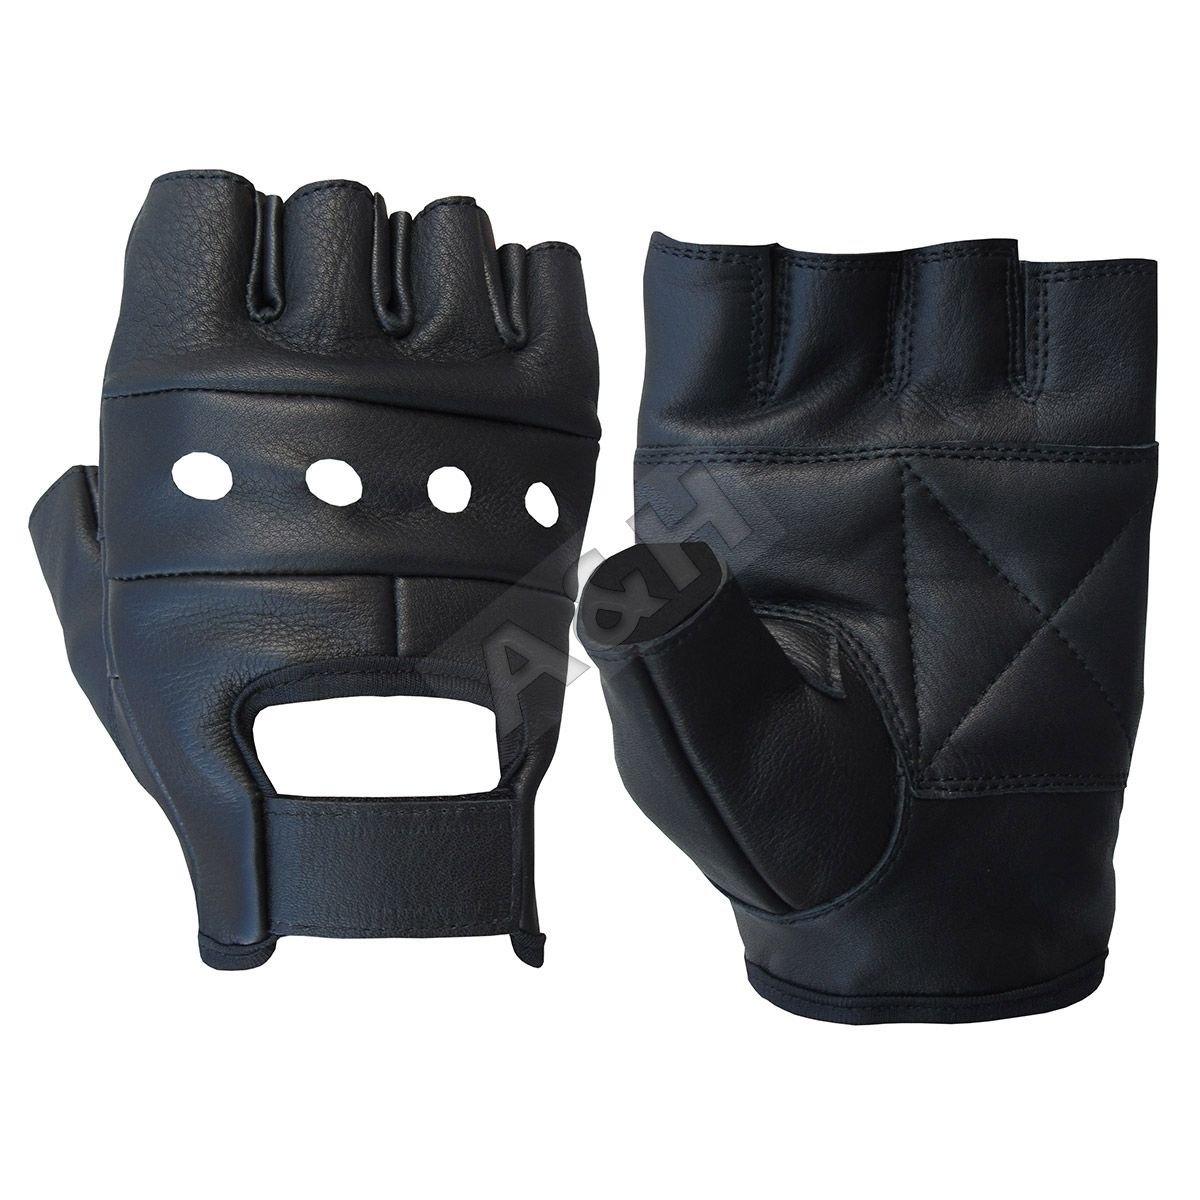 Large A/&H Apparel Leather FingerLess Cowhide Genuine Motorcycle Driving Gloves